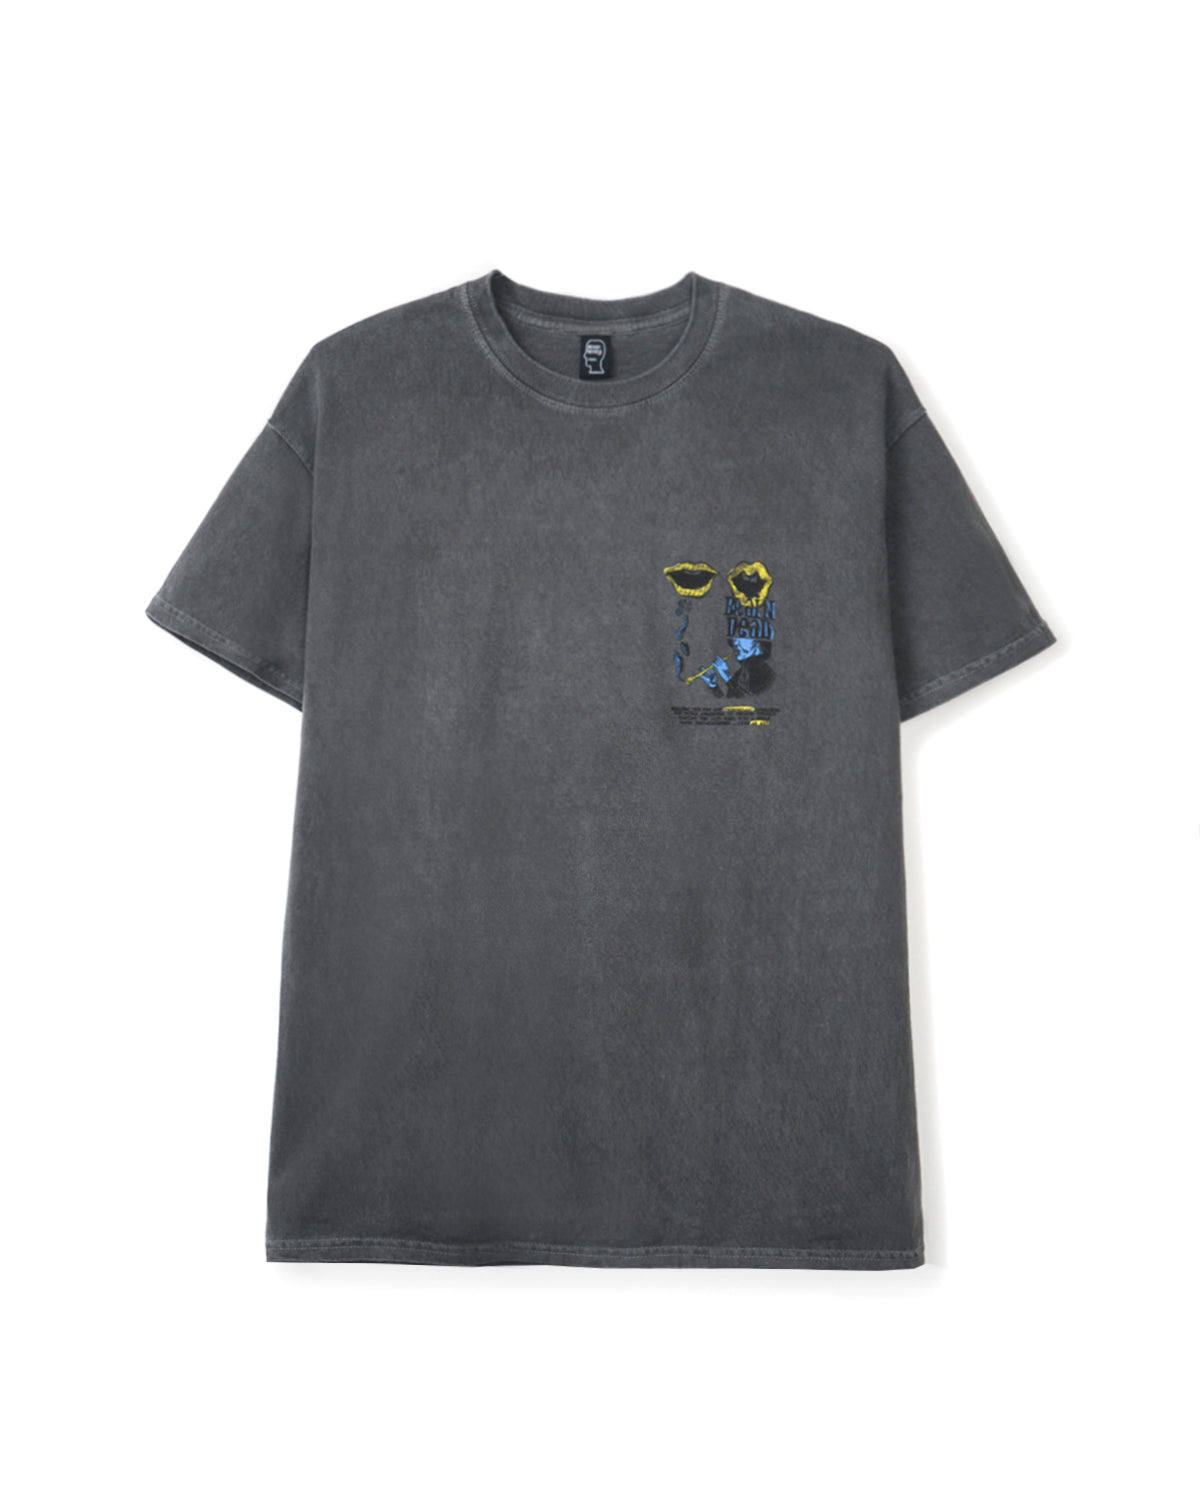 Invasion T-shirt - Washed Black